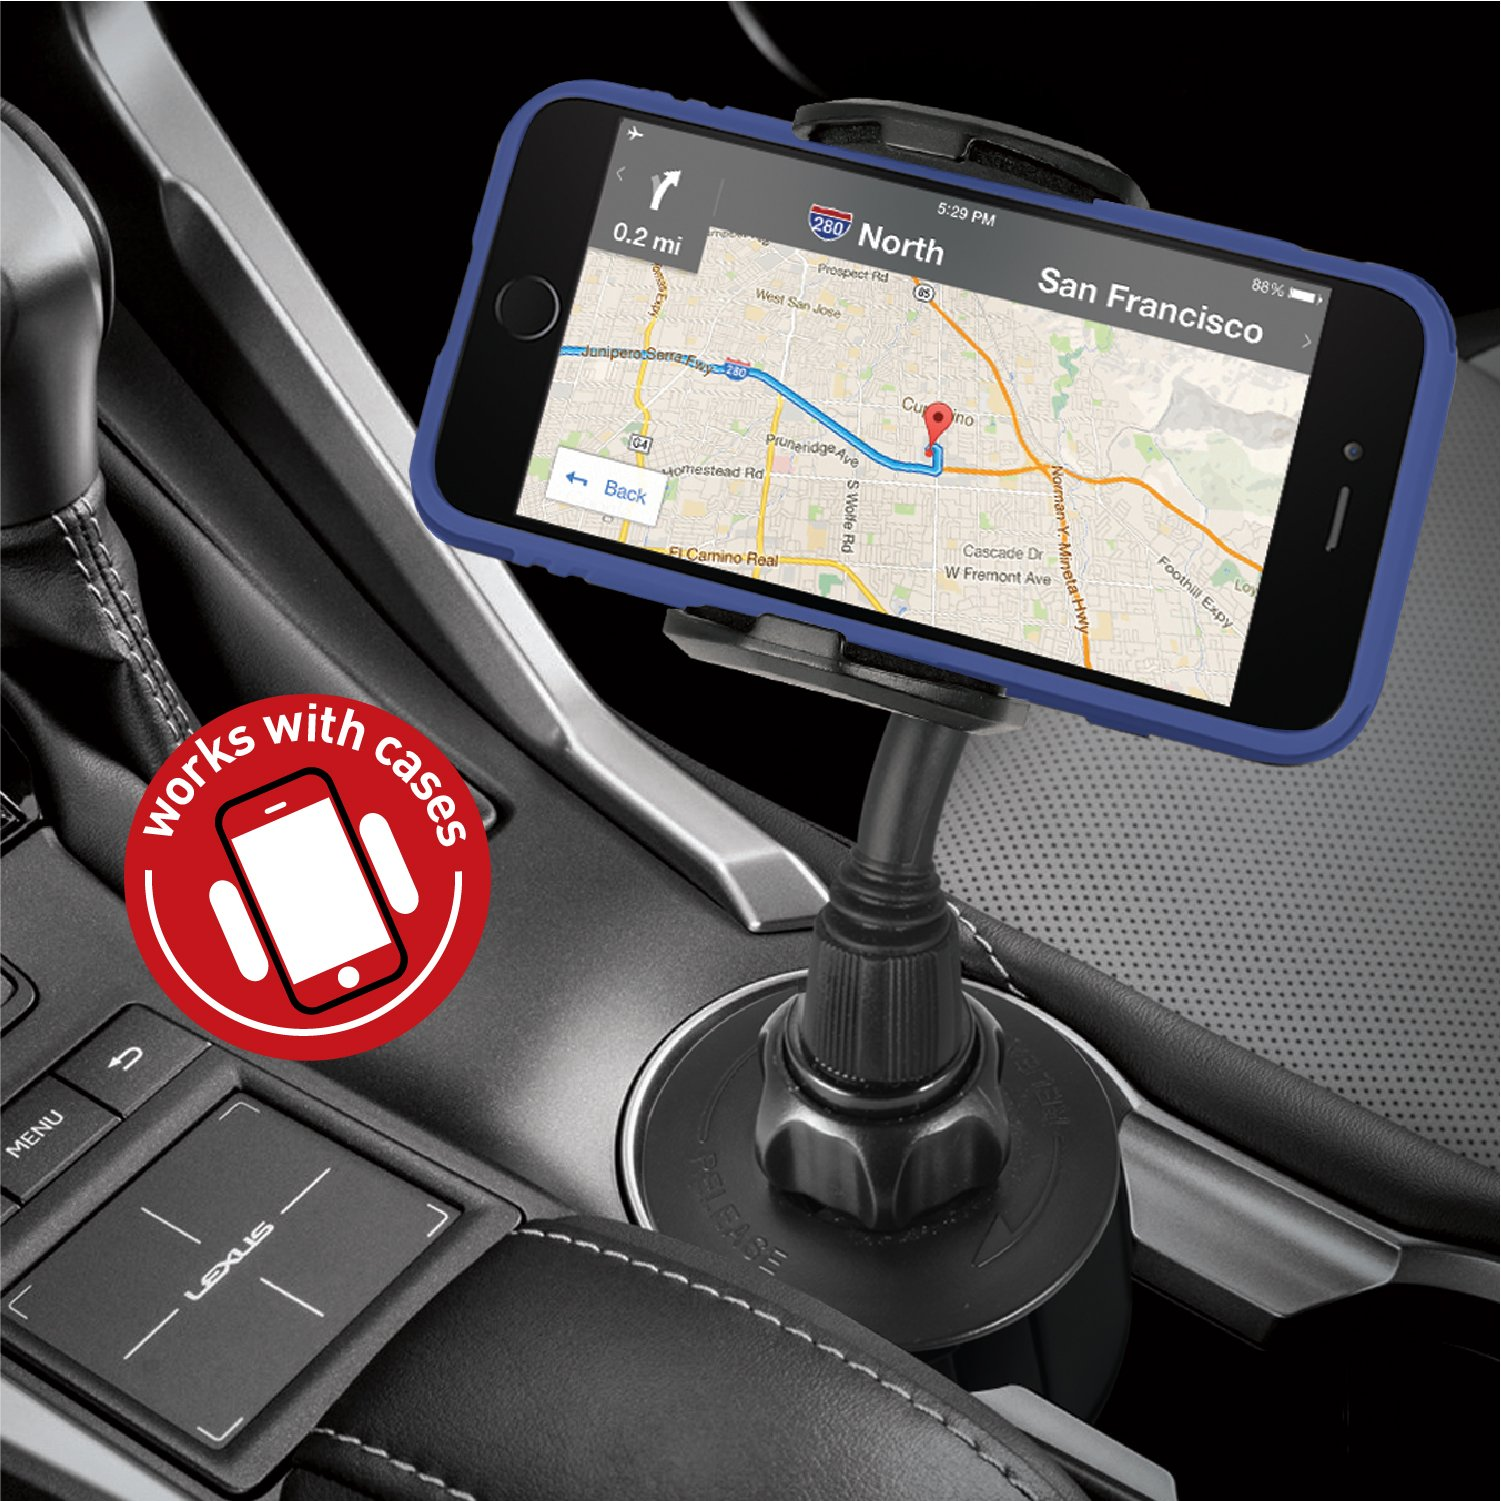 Macally Adjustable Automobile Cup Holder Phone Mount for iPhone X 8 8+ 7 7 Plus 6s Plus 6s SE Samsung Galaxy S9 S9+ S8 S7 Edge S6 S5 Note 5, iPod, Smartphones, MP3, GPS etc (MCUPMP) by Macally (Image #6)